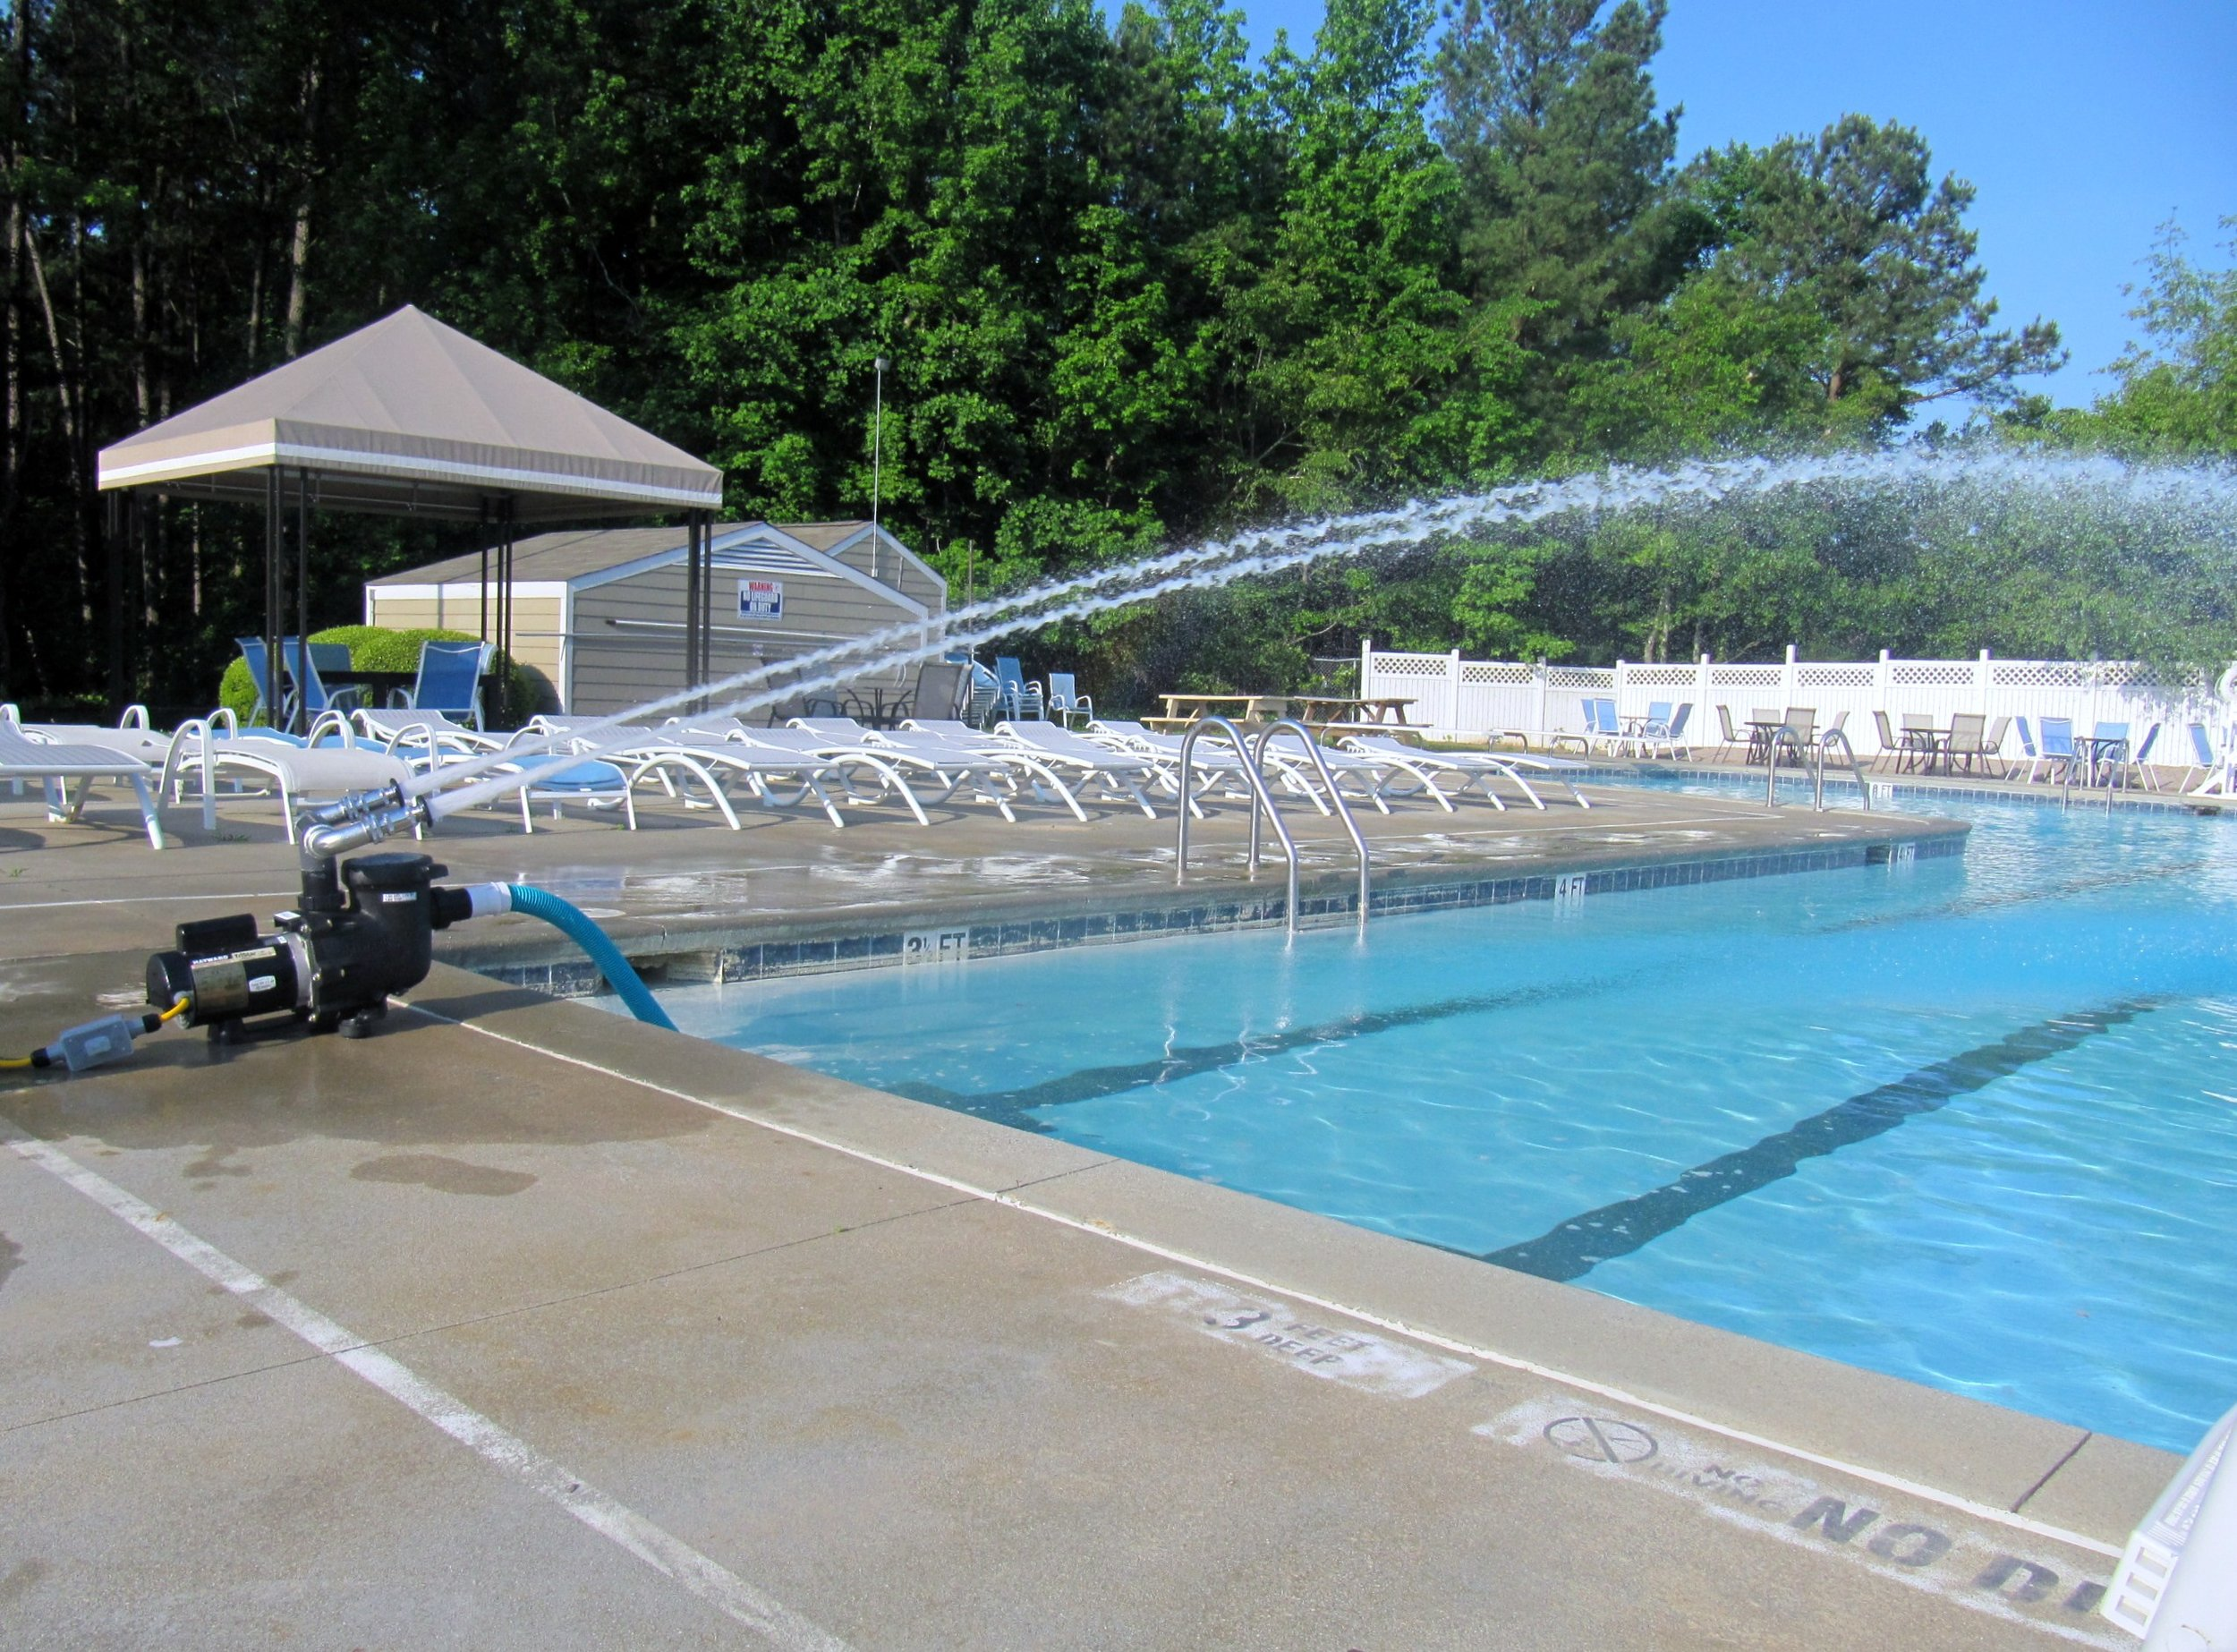 01_watercannon_1.5_springdale_area_recreation_club_raleigh_nc.jpg